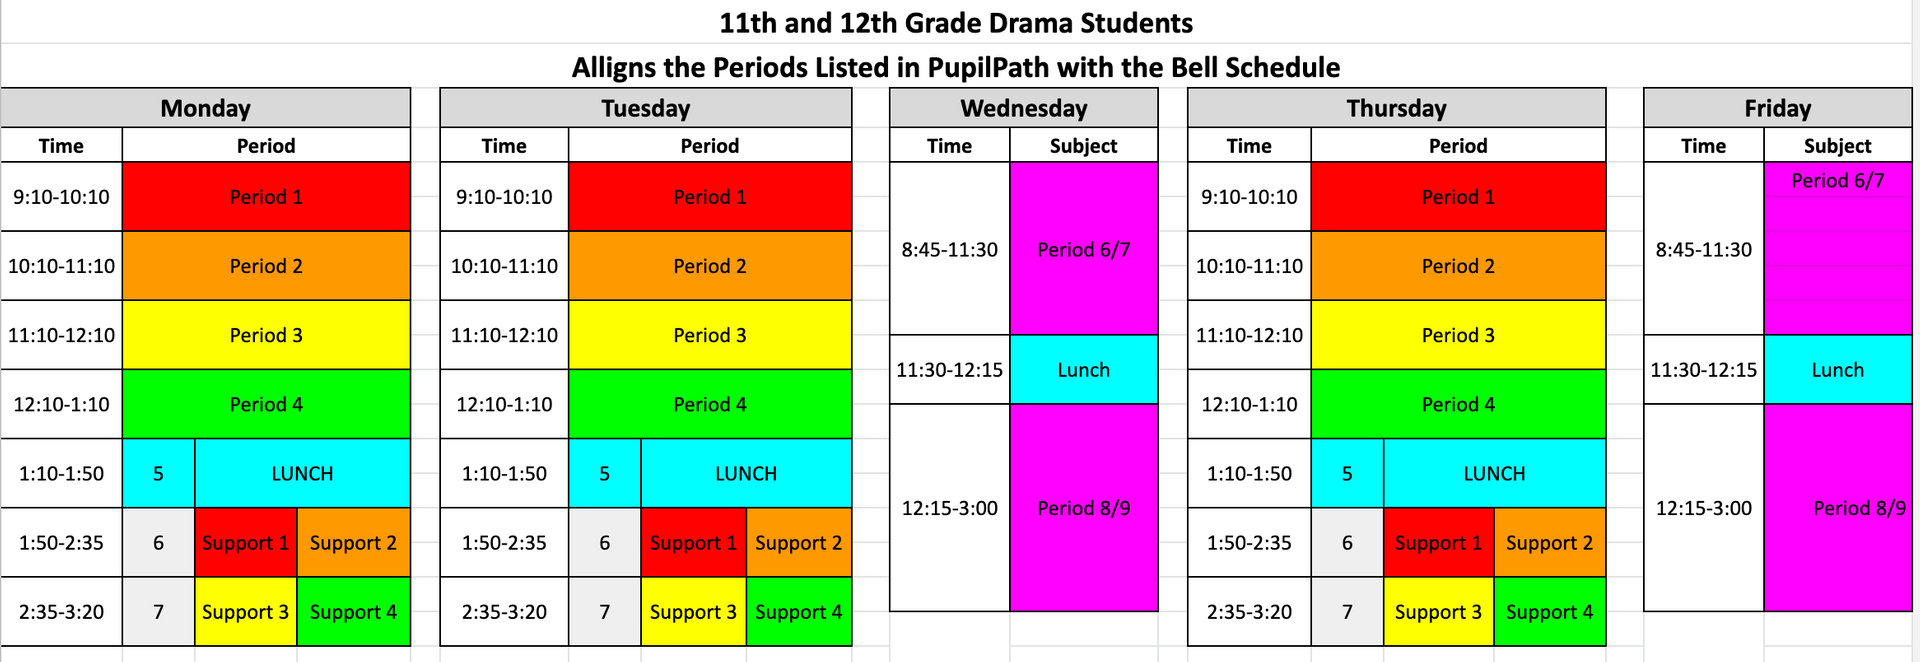 Drama Bell Schedules Grades 11 and 12